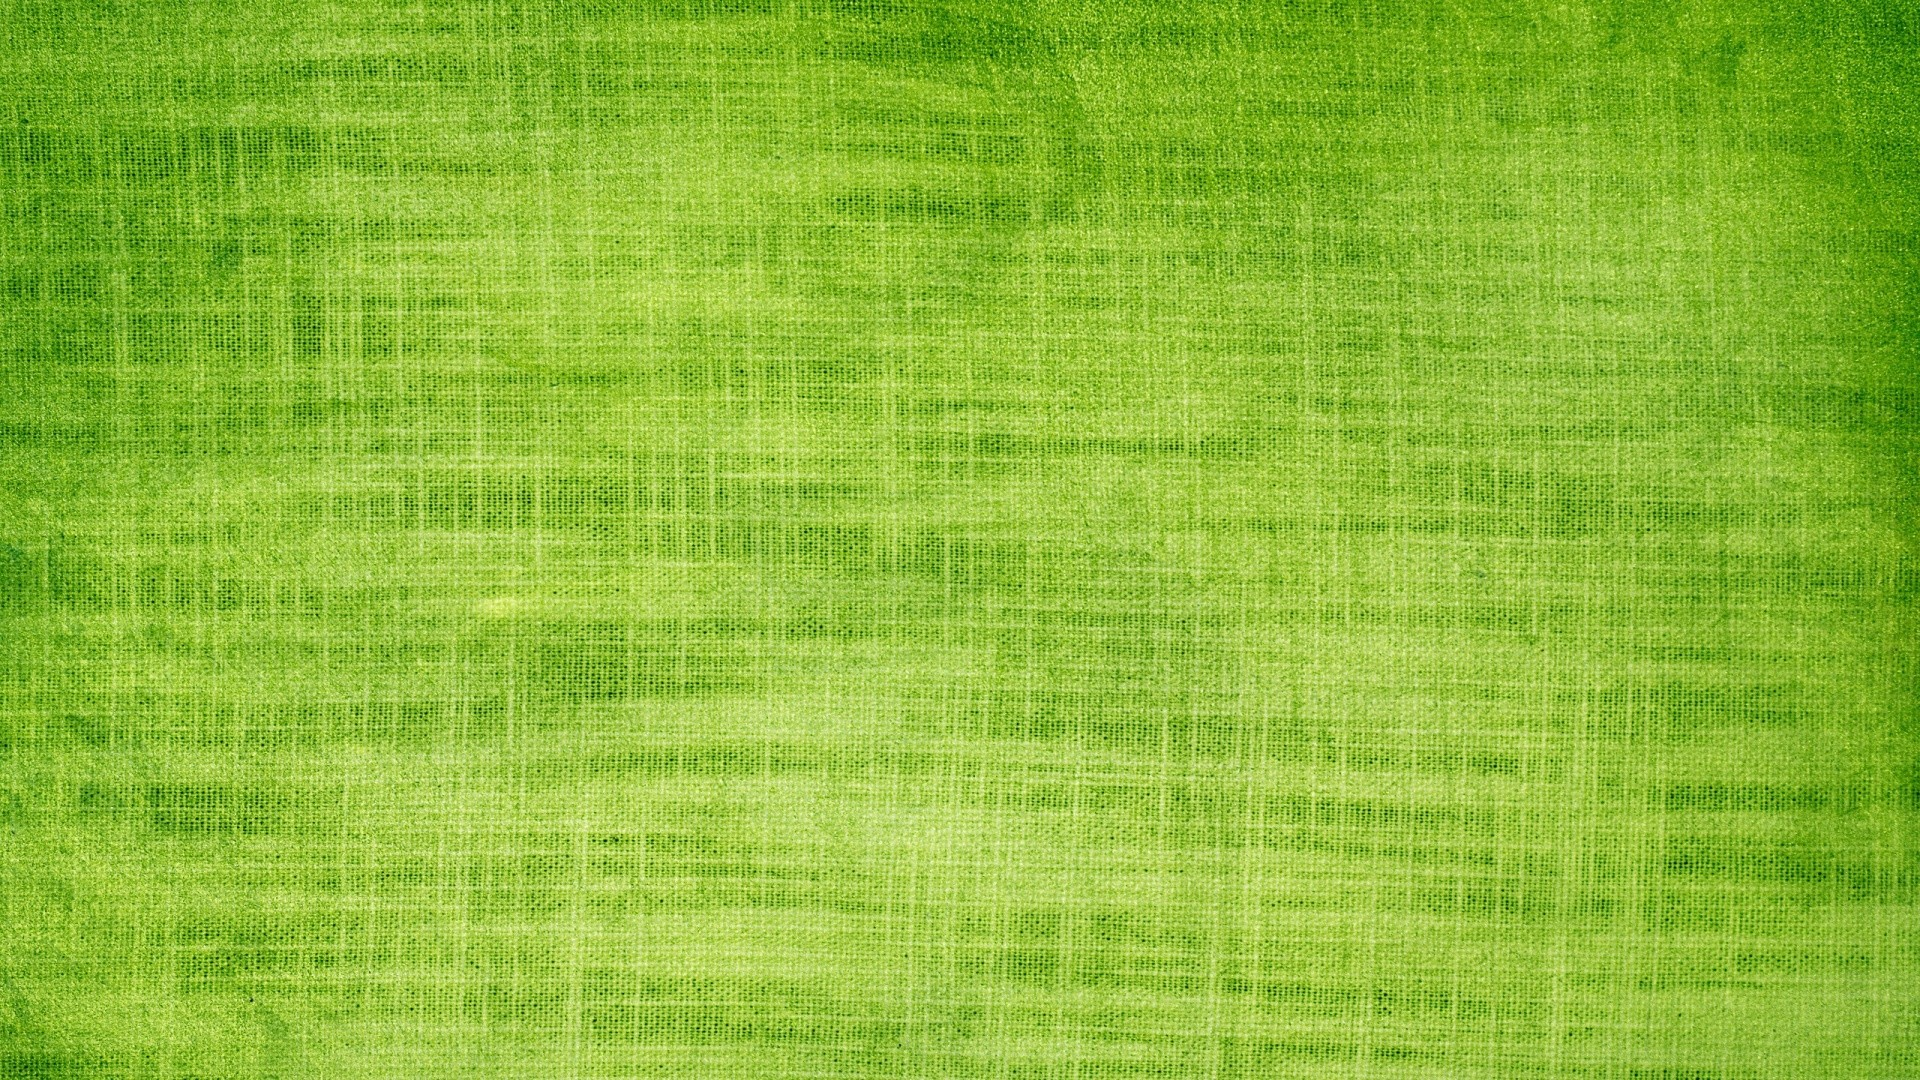 Green Fabric Texture. How to set wallpaper on your desktop? Click  the download link from above and set the wallpaper on the desktop from your  OS.